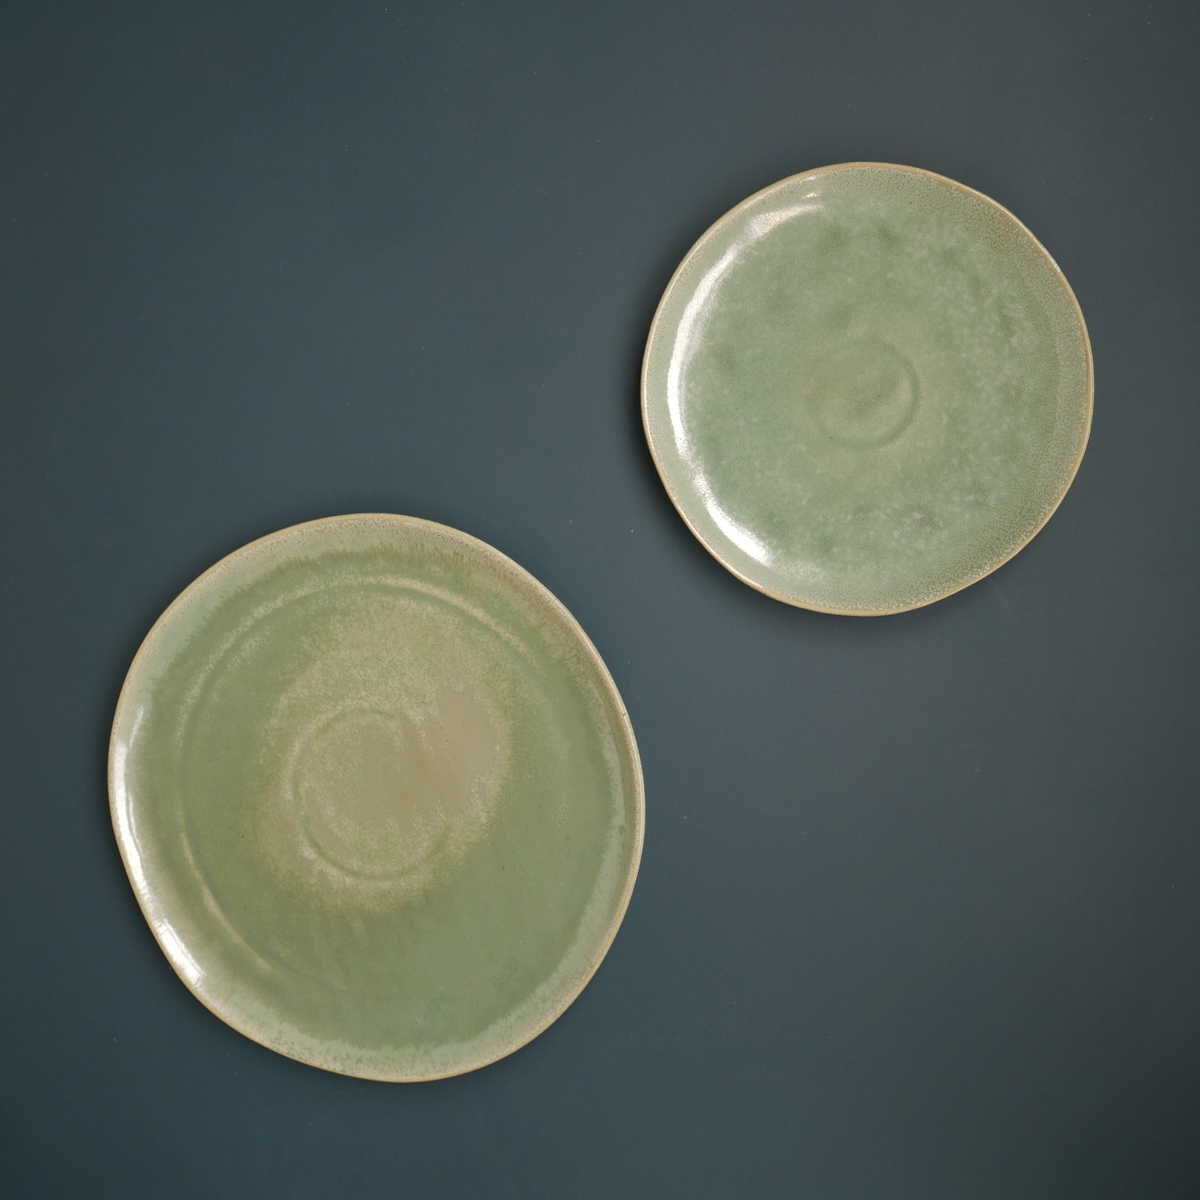 green-glazed-plate-&-side-plate-on-blue-background